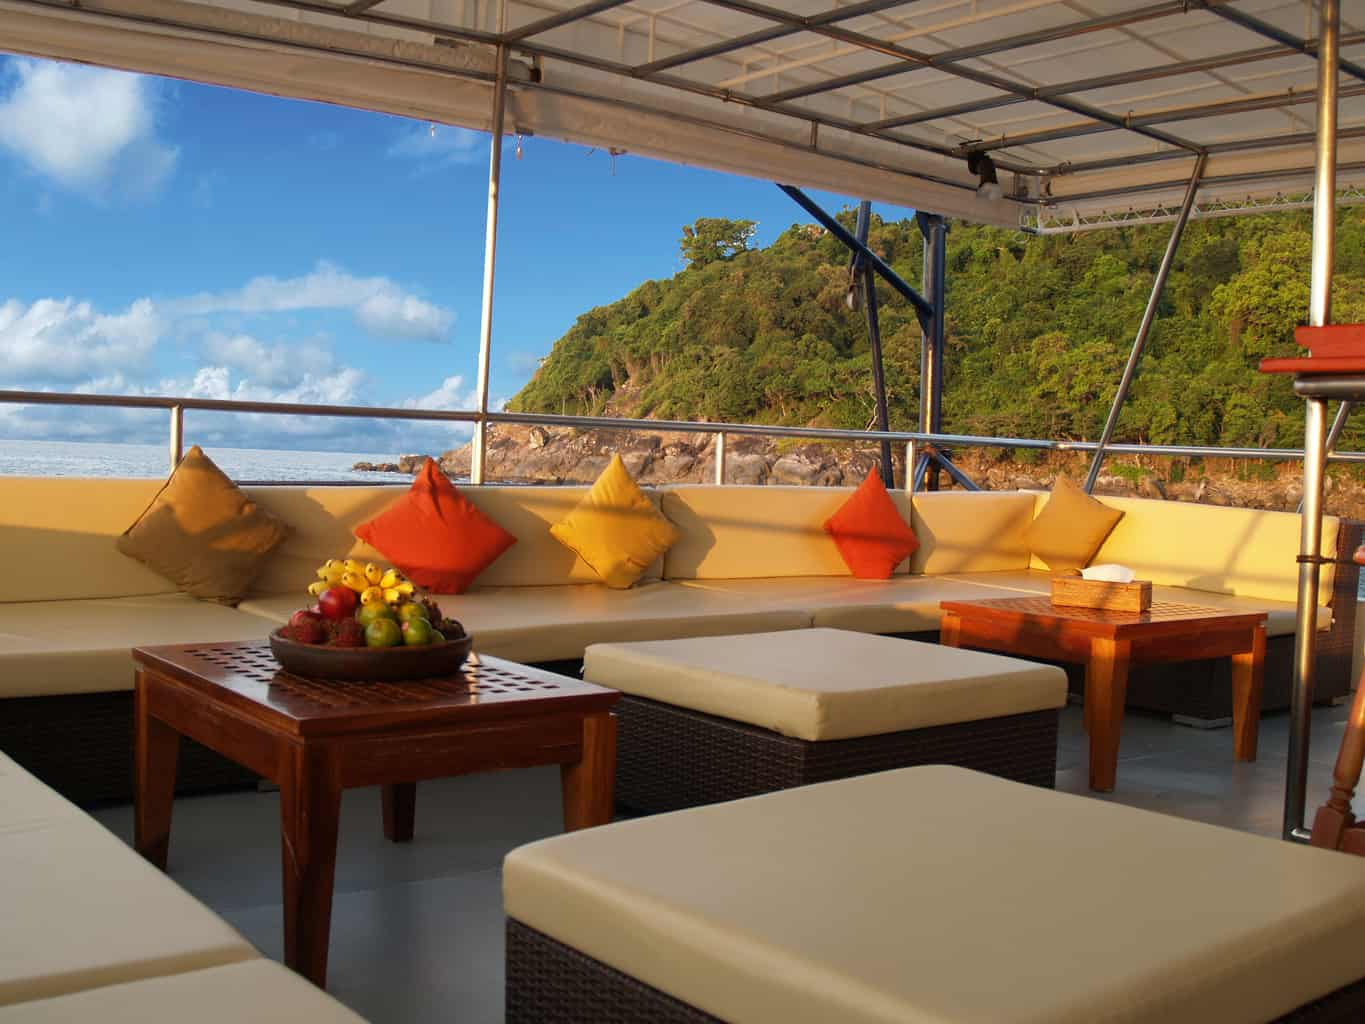 Indonesia liveaboard Diving holidays Mermaid 2 outside lounge